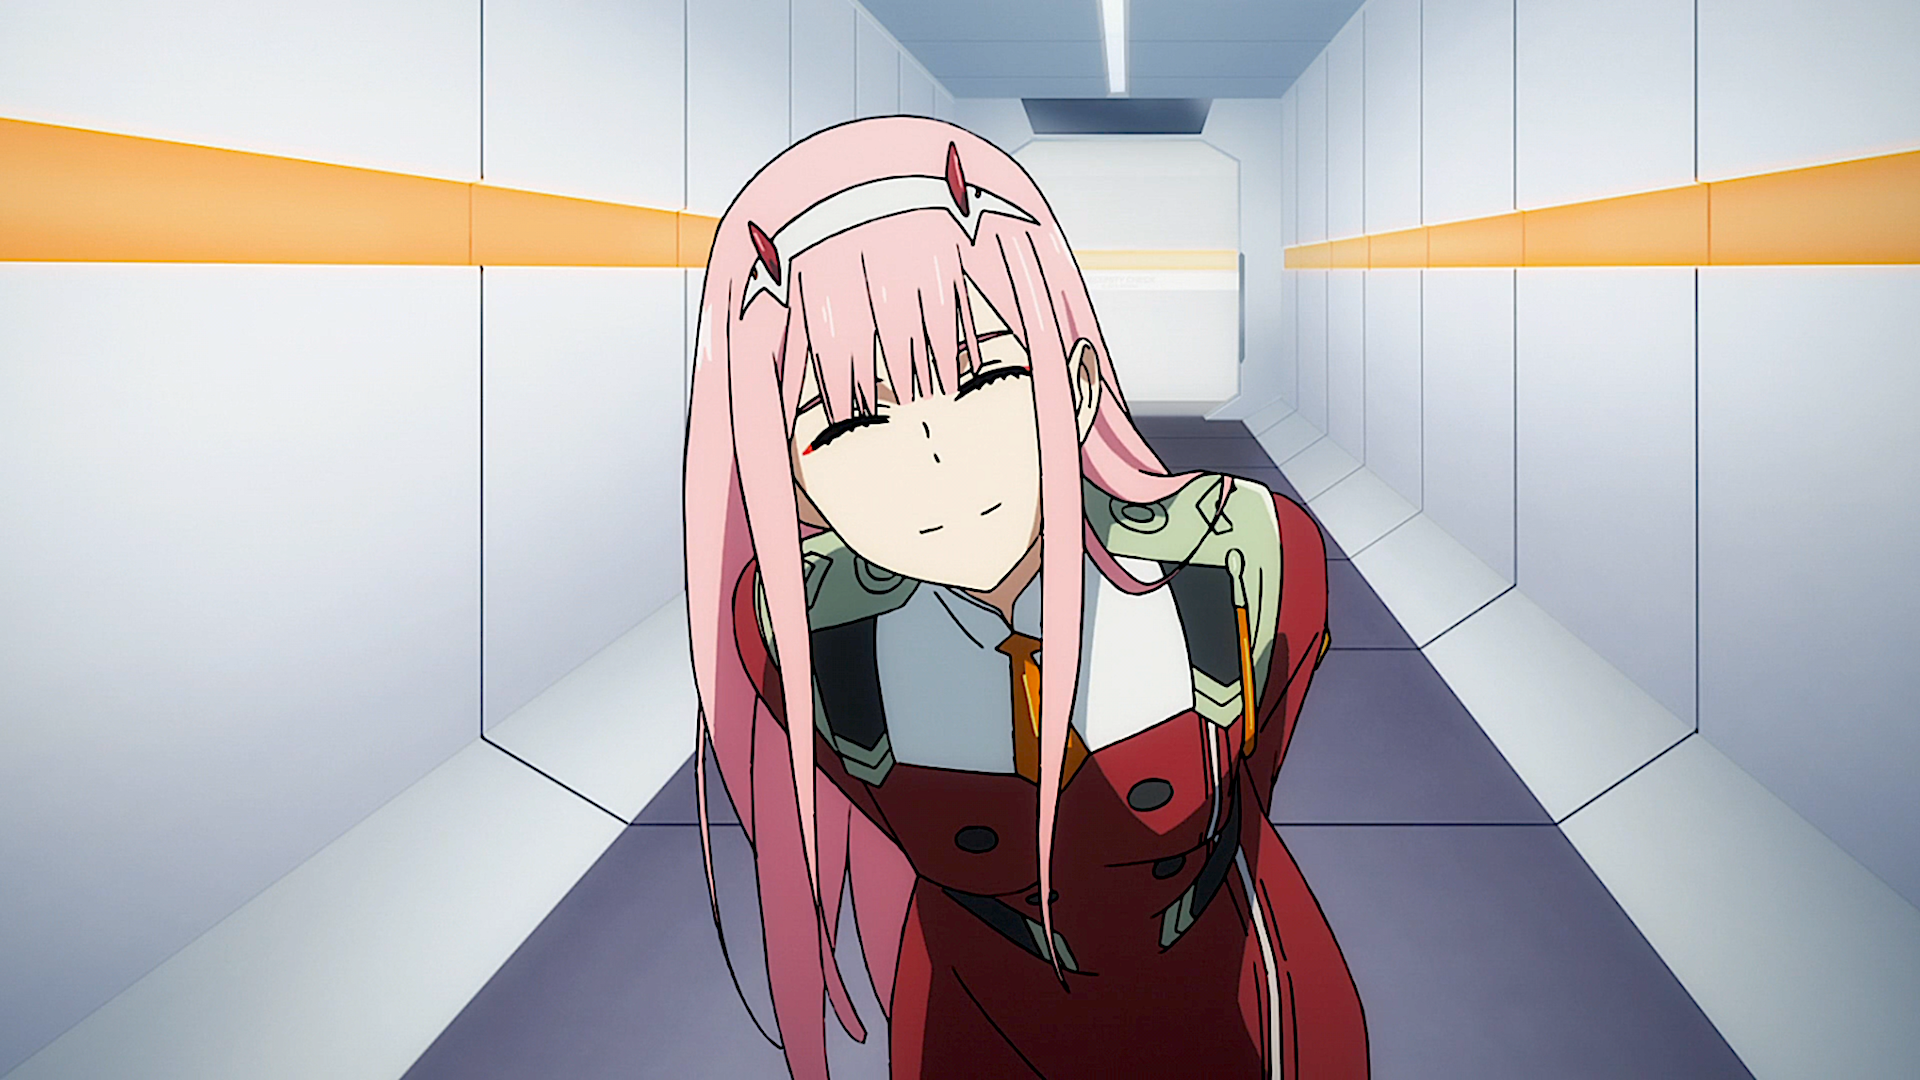 Anime - Darling in the FranXX  Zero Two (Darling in the FranXX) Anime Military Uniform Pink Hair Horns Wallpaper